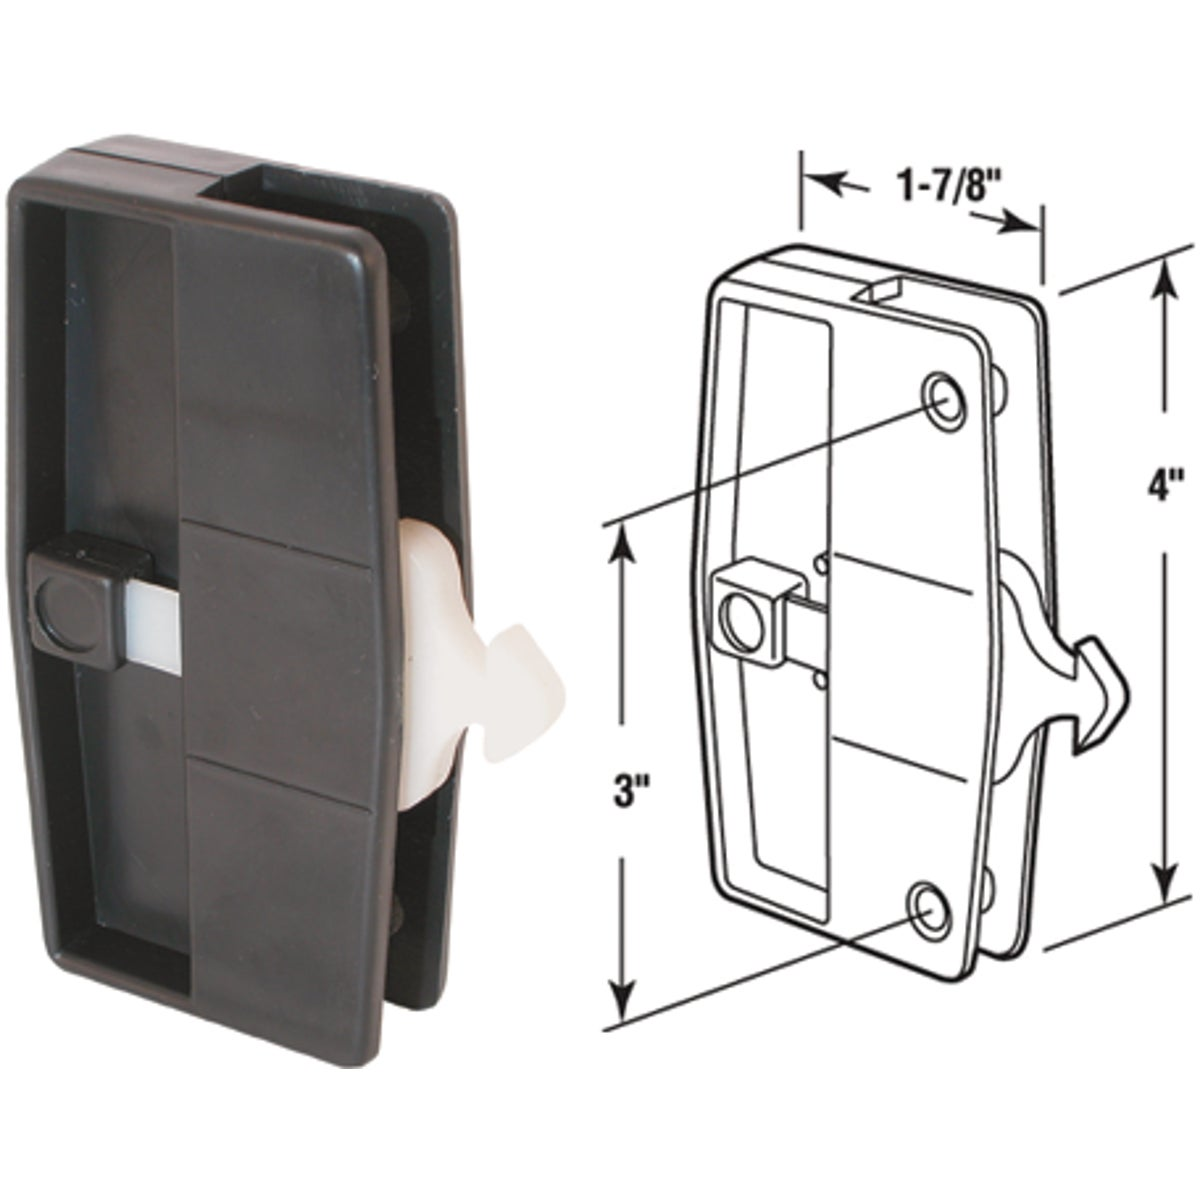 SCREEN LOCKING HANDLE - 12550 by Prime Line Products